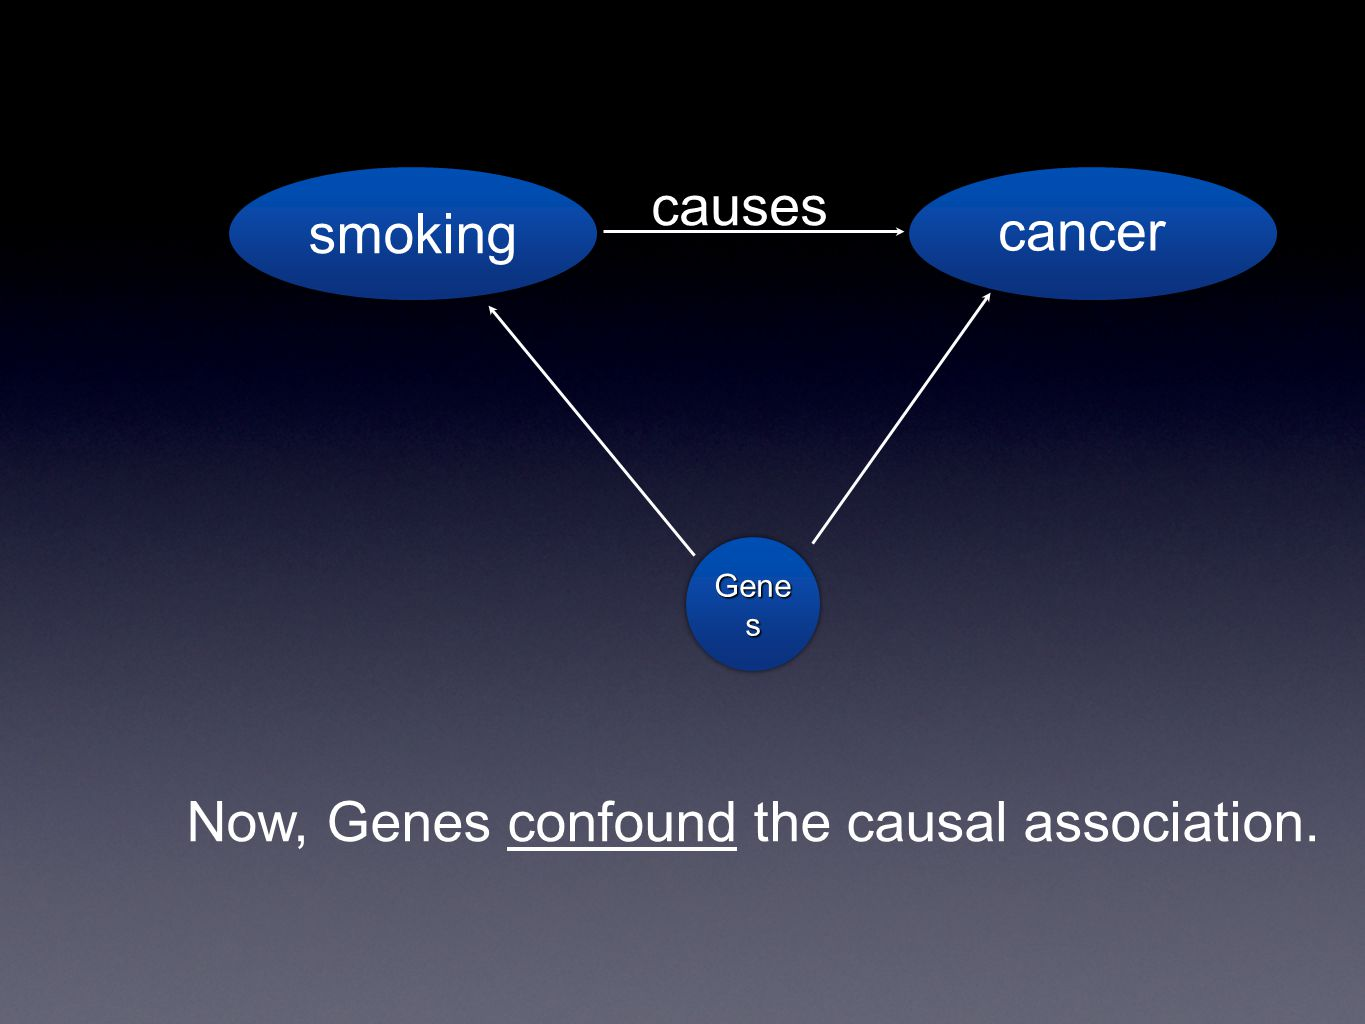 smoking cancer causes Gene s Now, Genes confound the causal association.